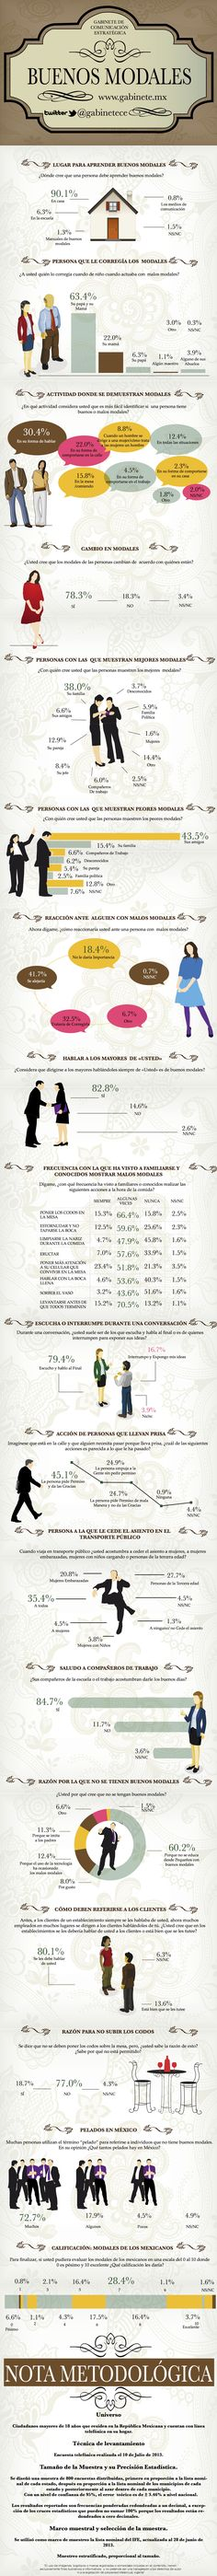 Los buenos modales #infografia #infographic #education